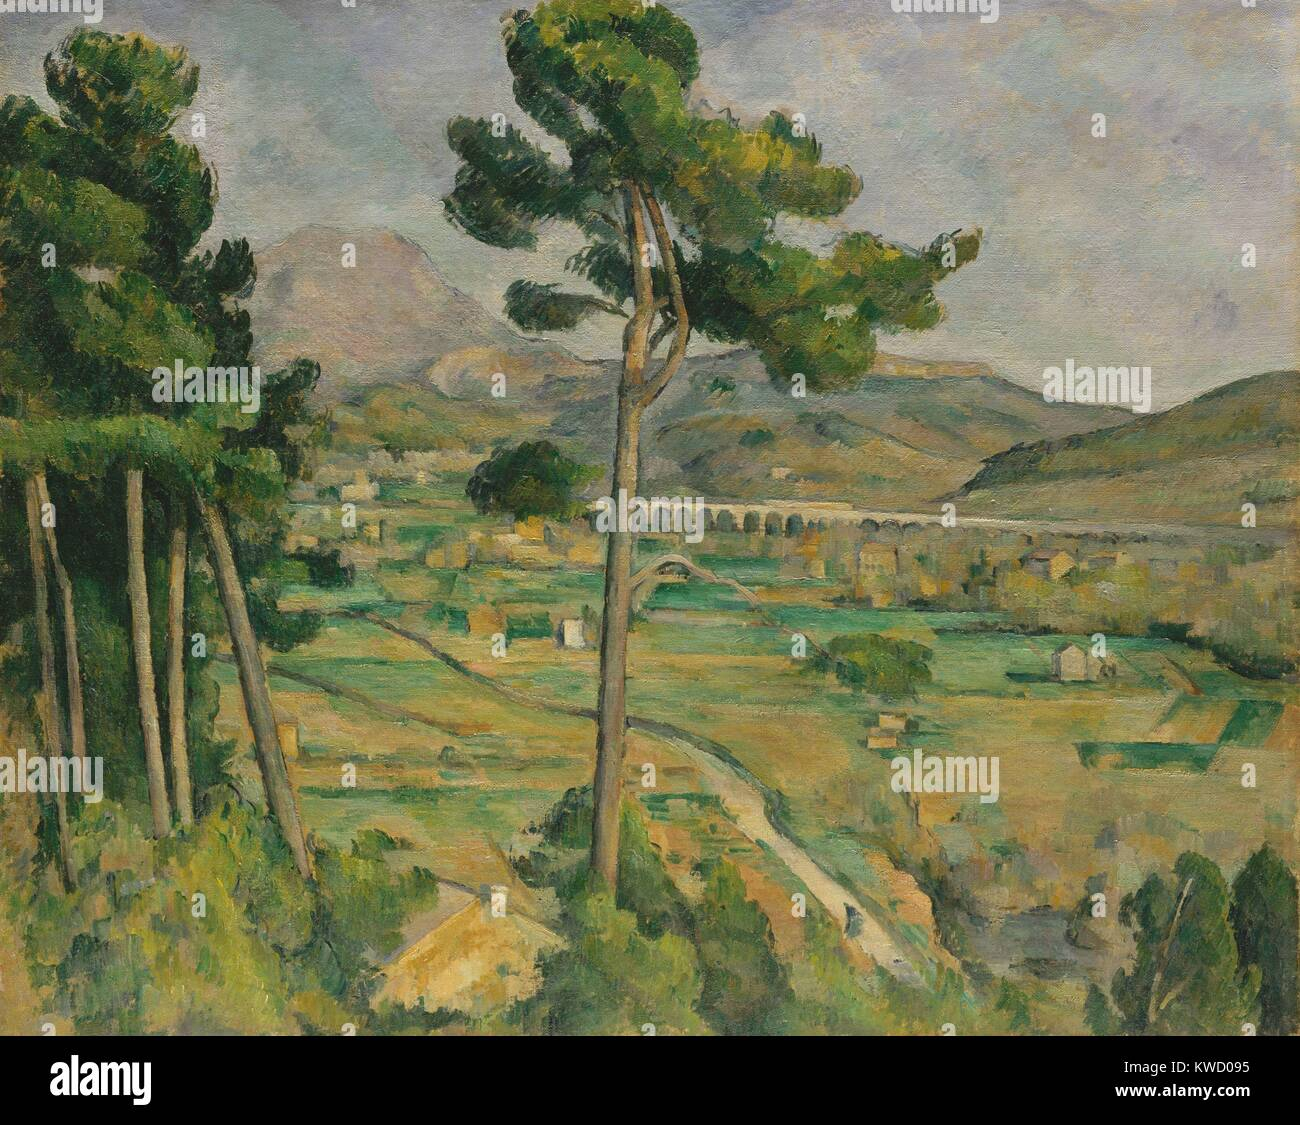 Mont Sainte-Victoire, Viaduct of the Arc River Valley, by Paul Cezanne, 1882-85, Post-Impressionism. Cezannes native Stock Photo